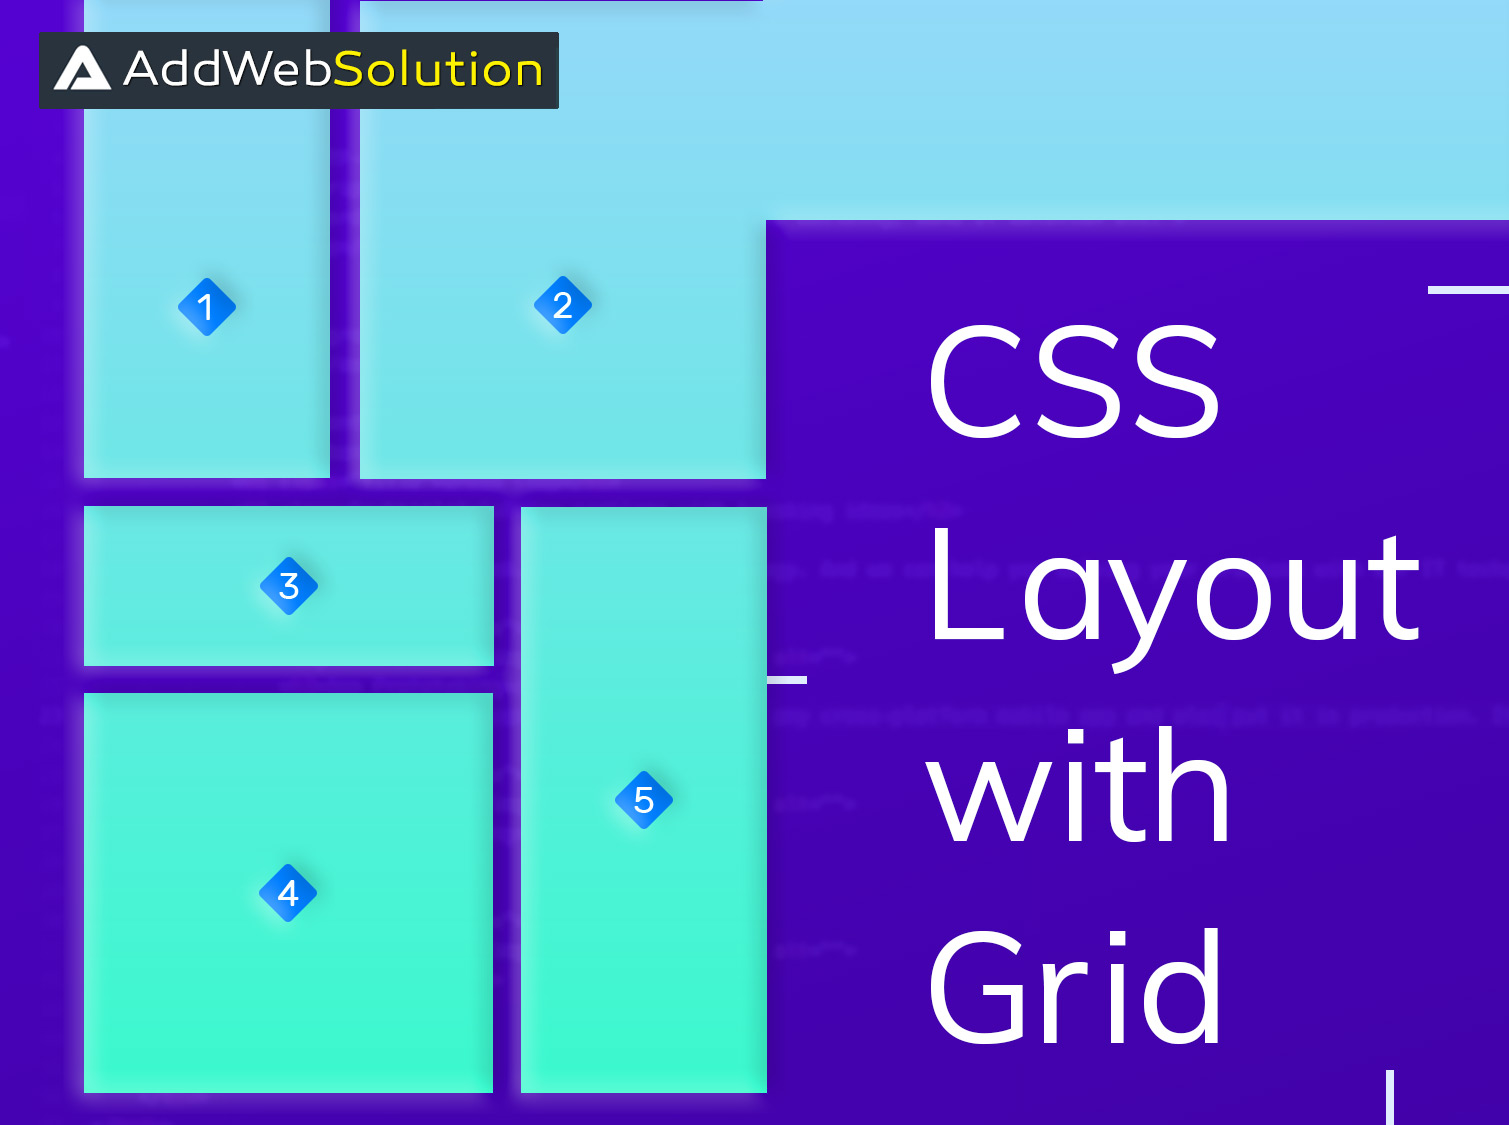 Learn about CSS Layout with Grid & its Techniques